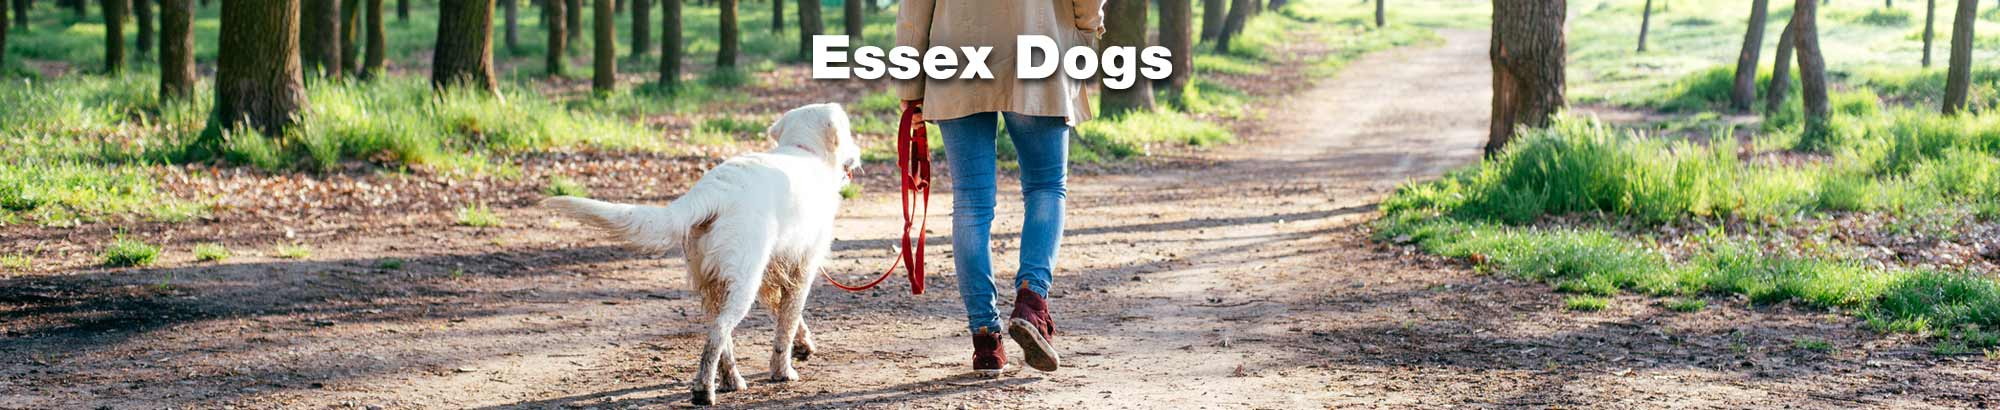 Essex Dogs - for all things dog in Essex